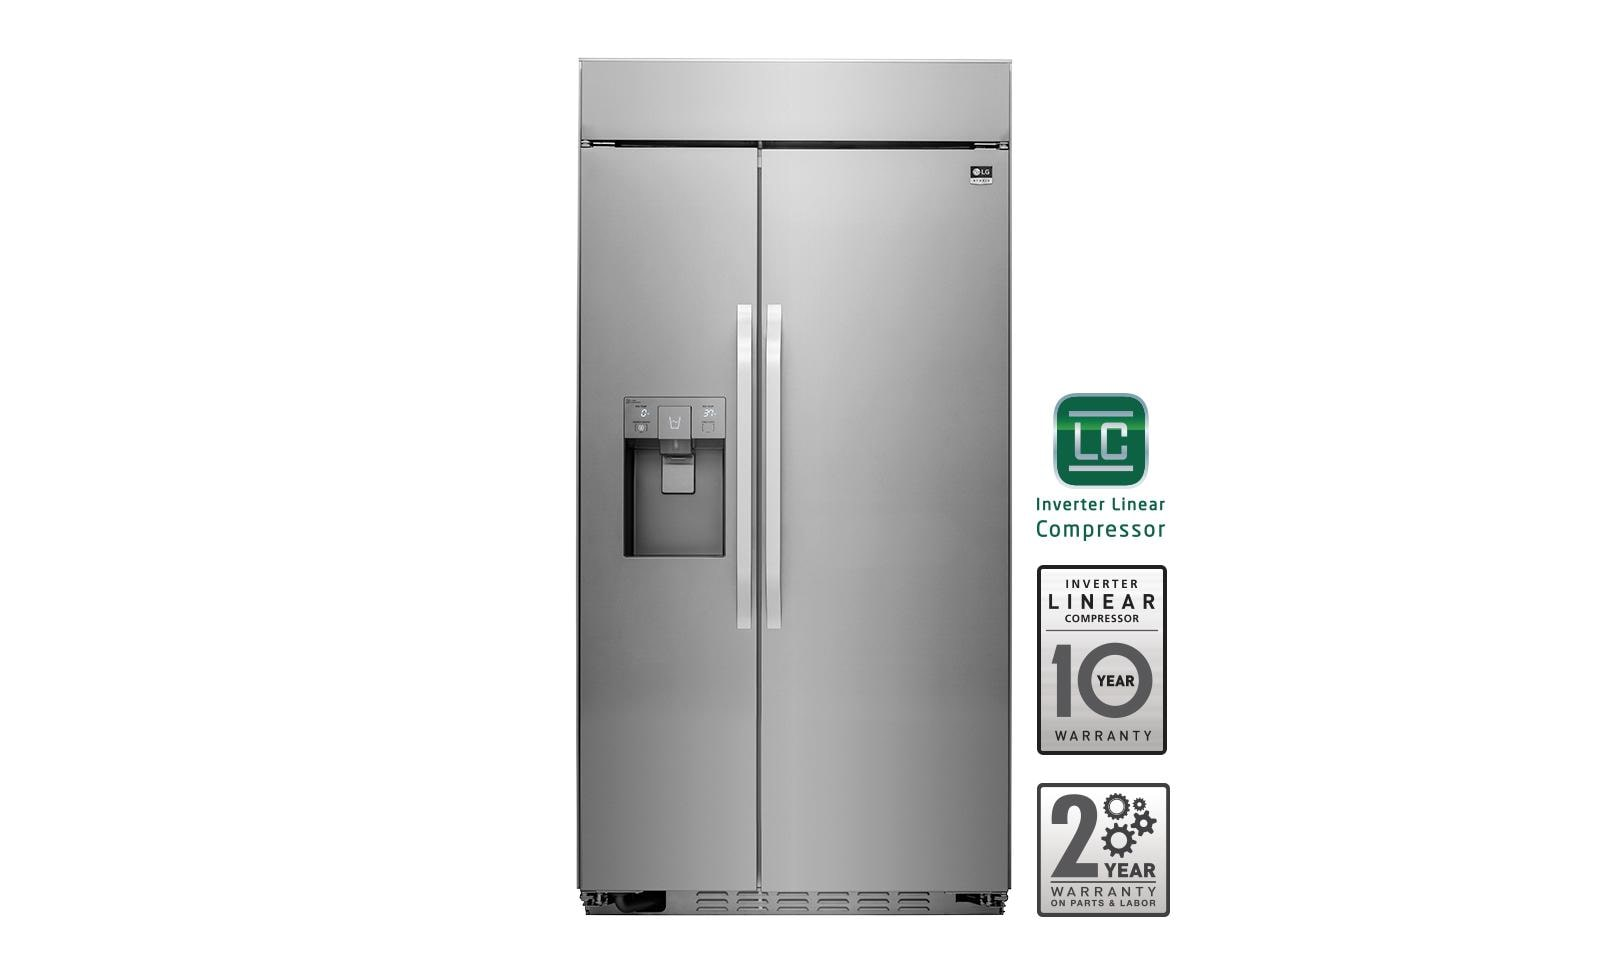 Largest Capacity Refrigerator Lg Lssb2791st Lg Studio Ultra Large Capacity Side By Side